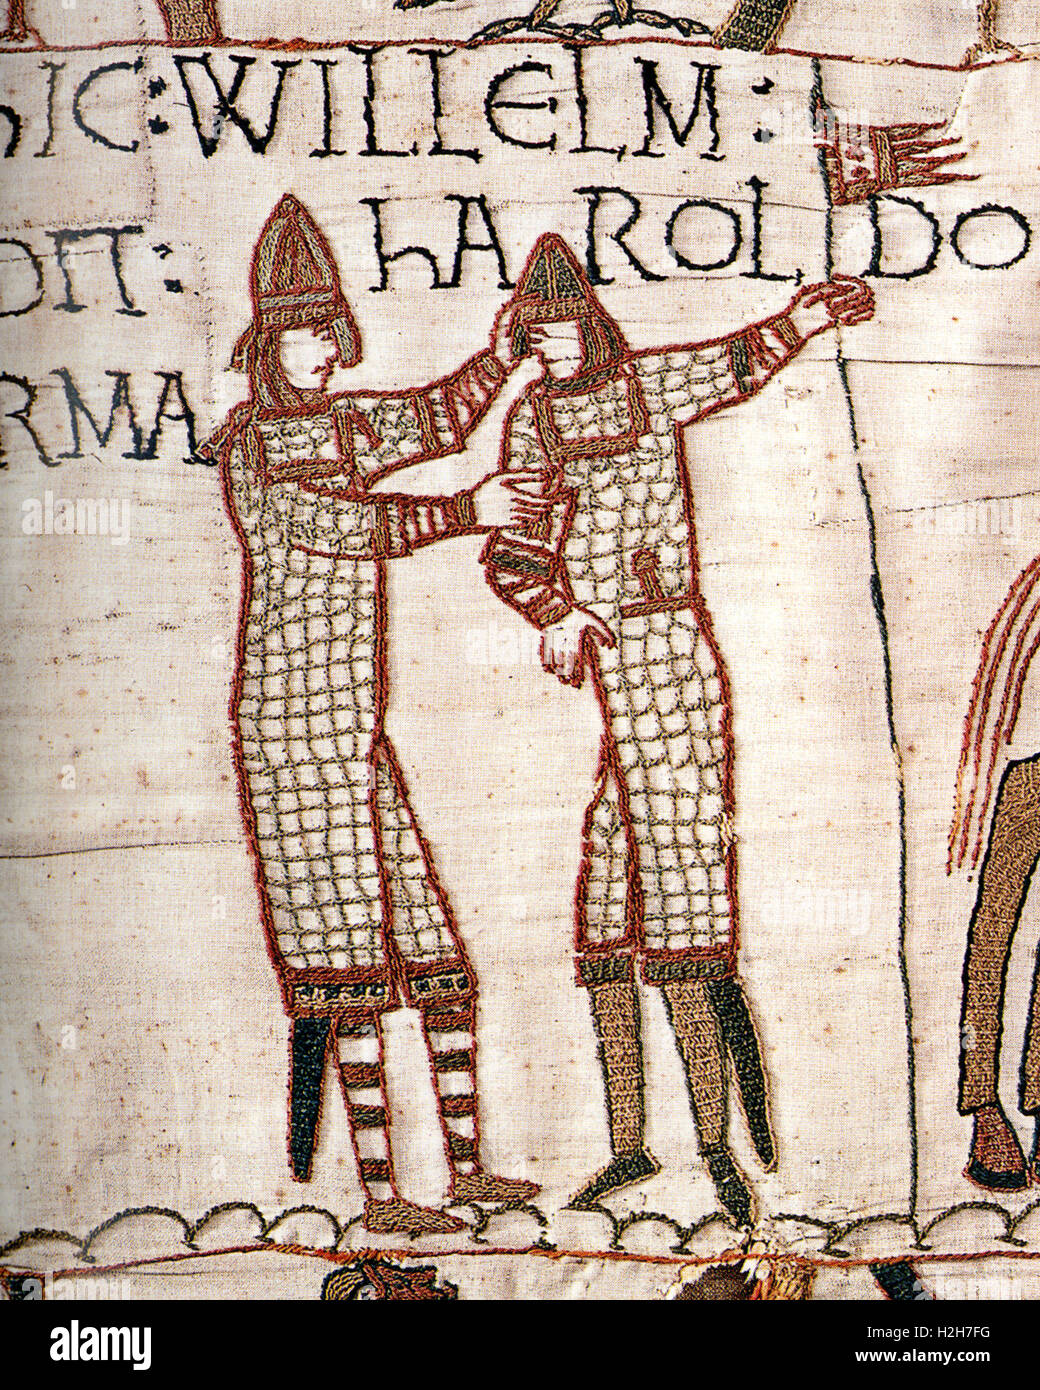 Bayeux Tapestry, William supplying weapons to Harold during Harold's trip to the continent in 1064 - Stock Image